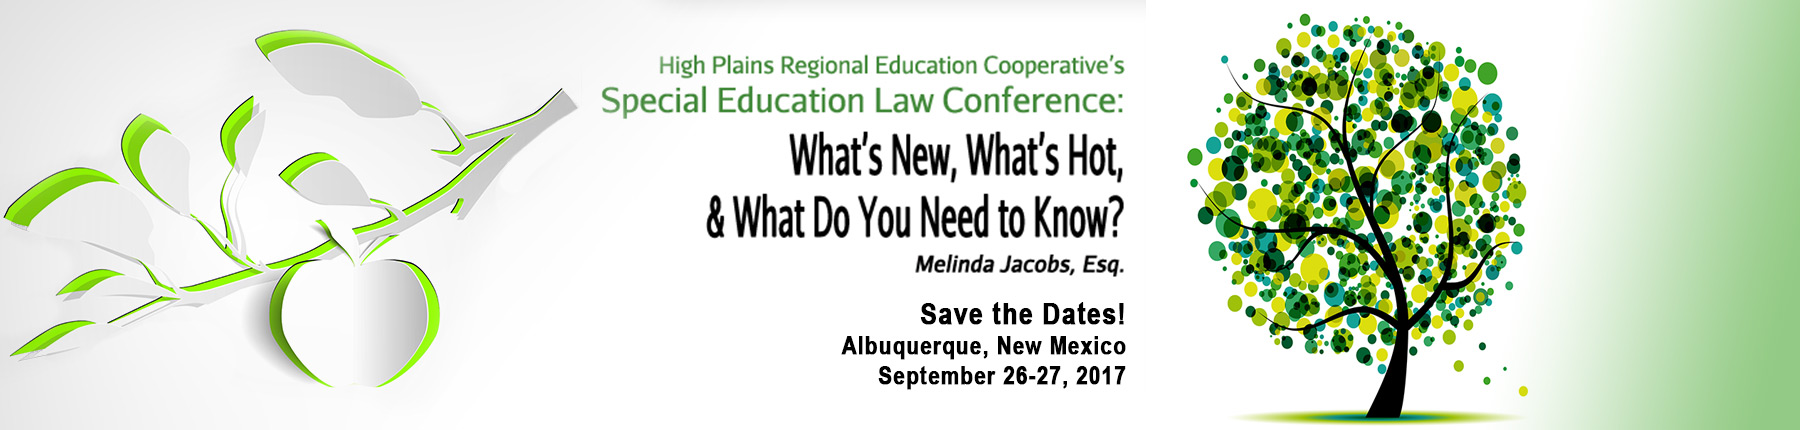 Law conference